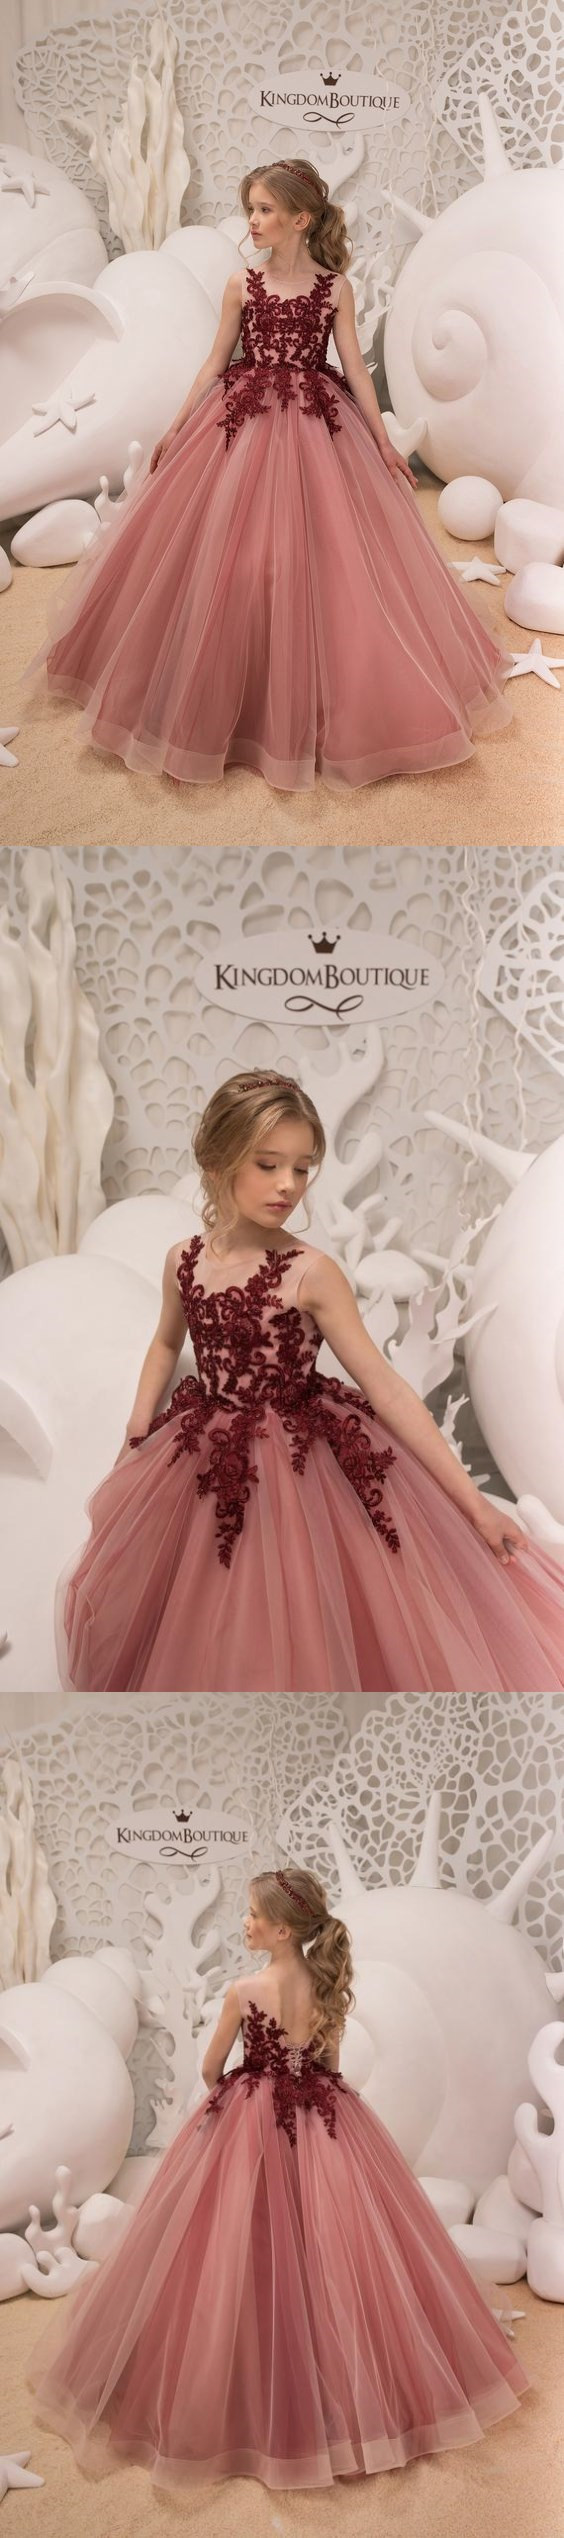 Blush Pink And Maroon Flower Girl Dress By Meetbeauty On Zibbet